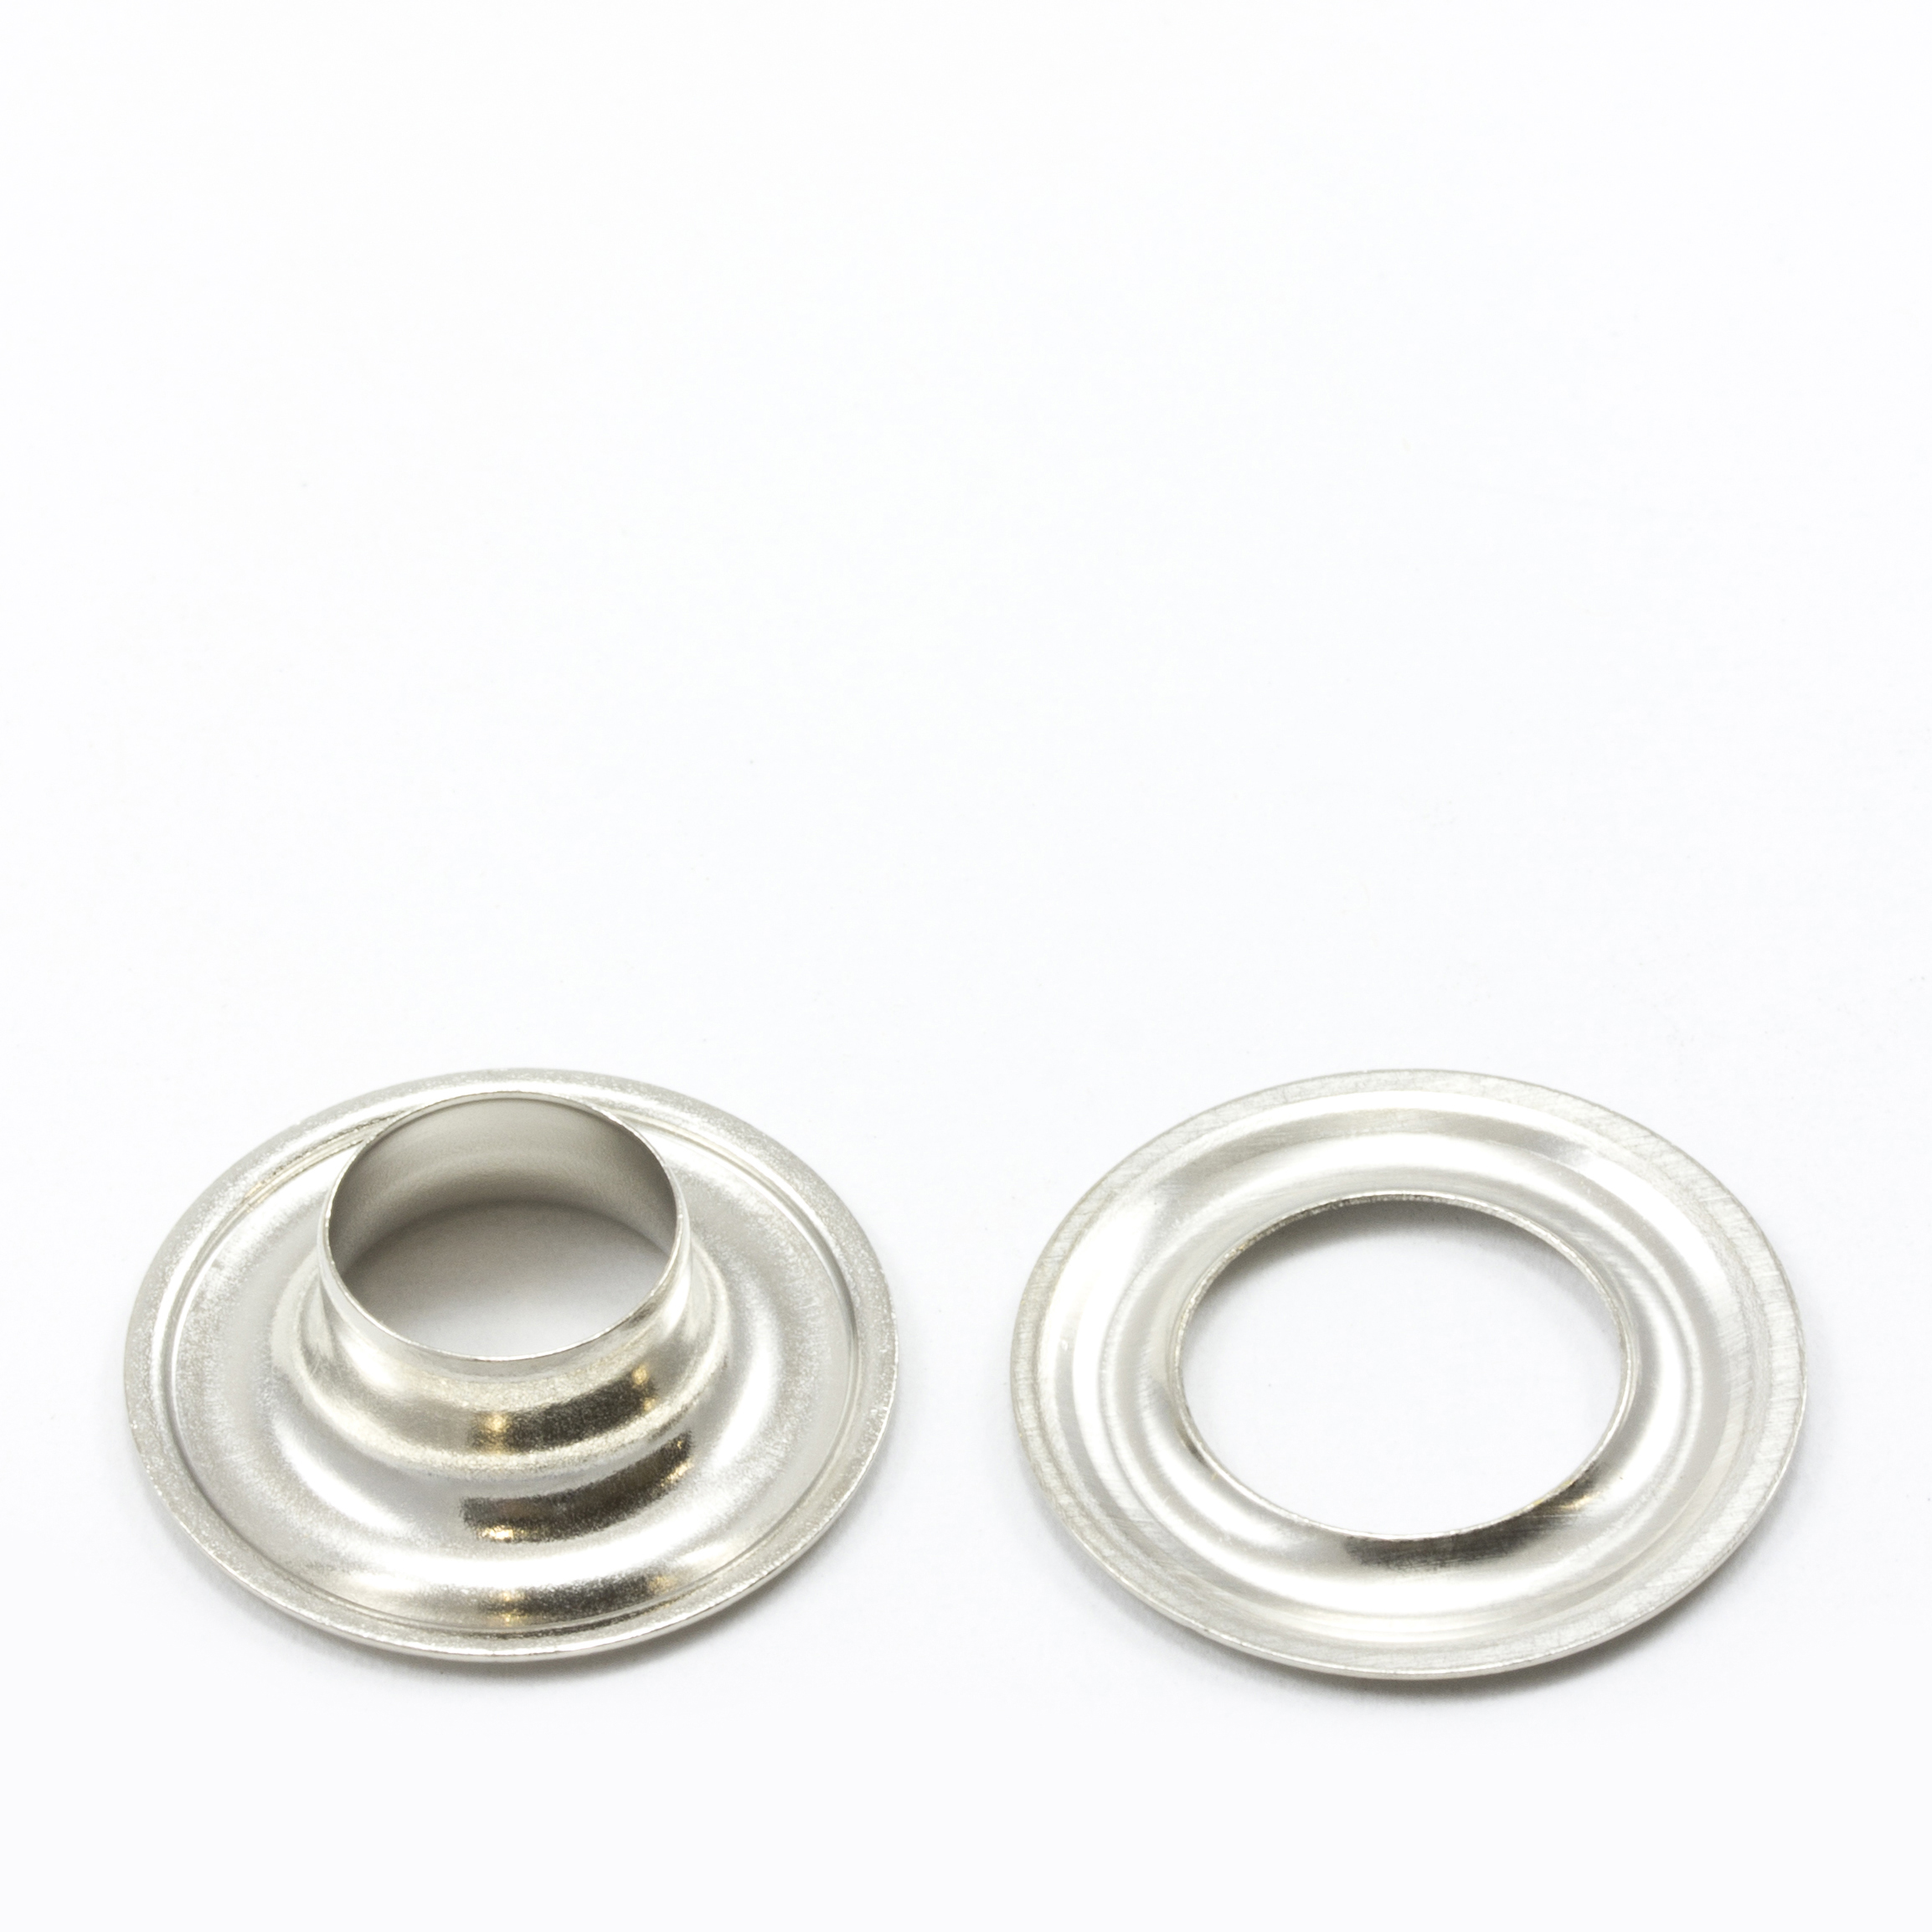 Grommet with Plain Washer #2 Brass Nickel Plated 3/8